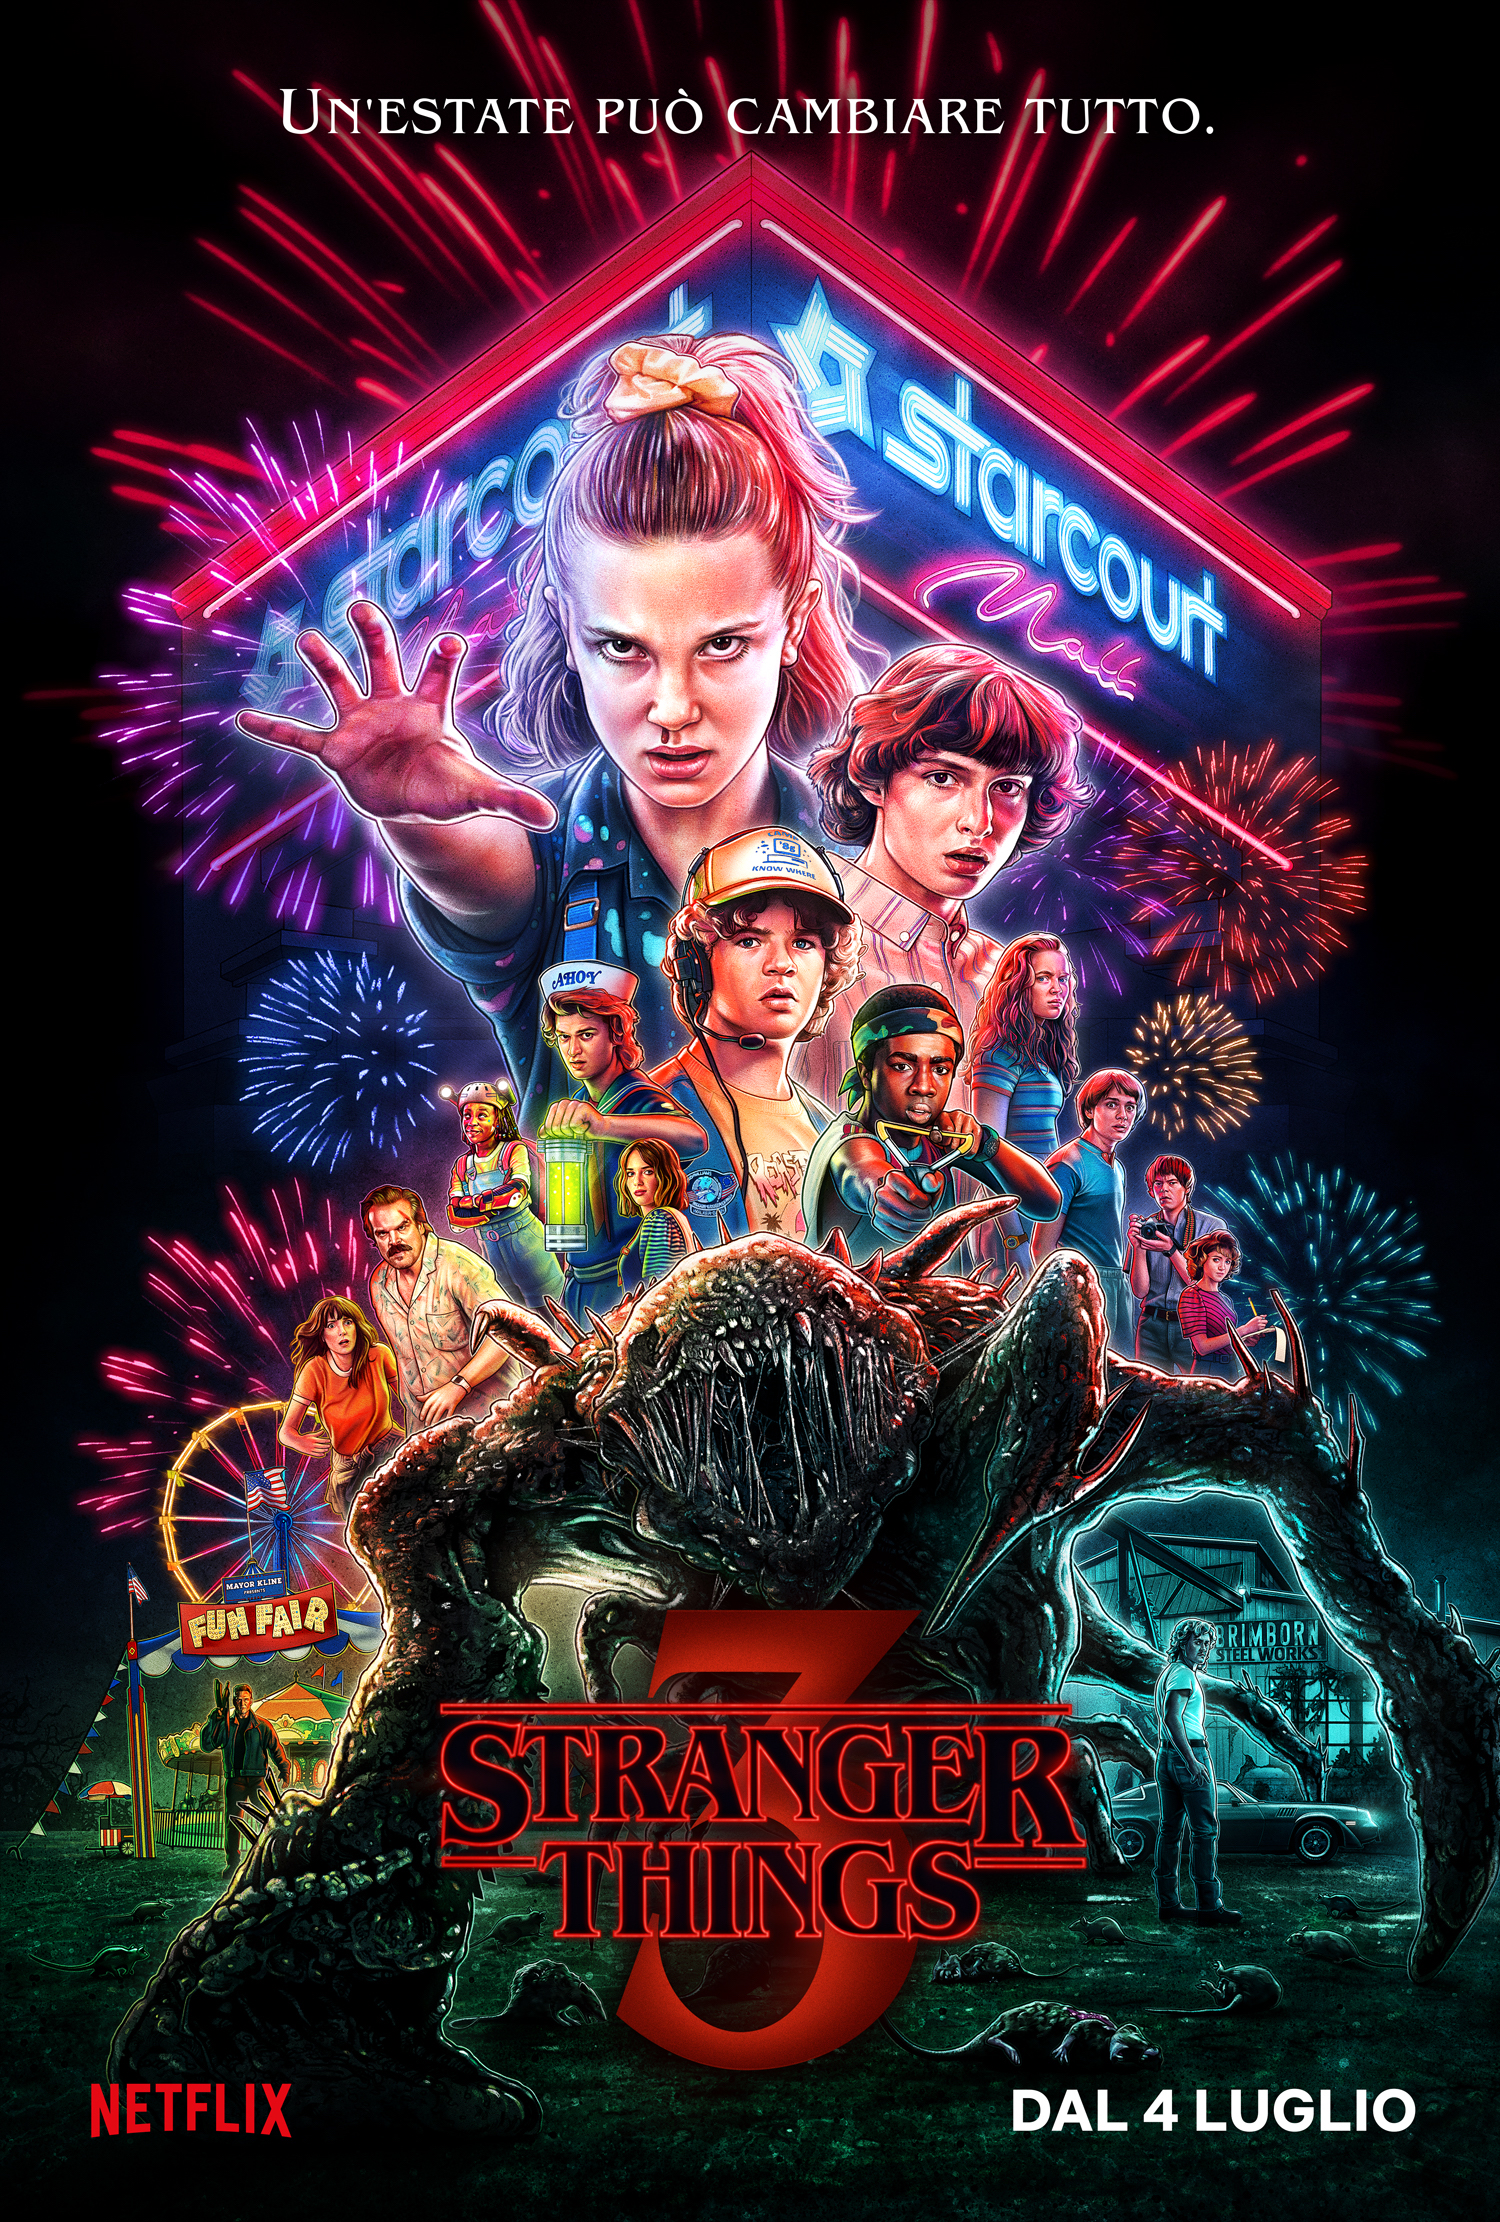 Stranger Things 3 - Matt e Ross Duffer